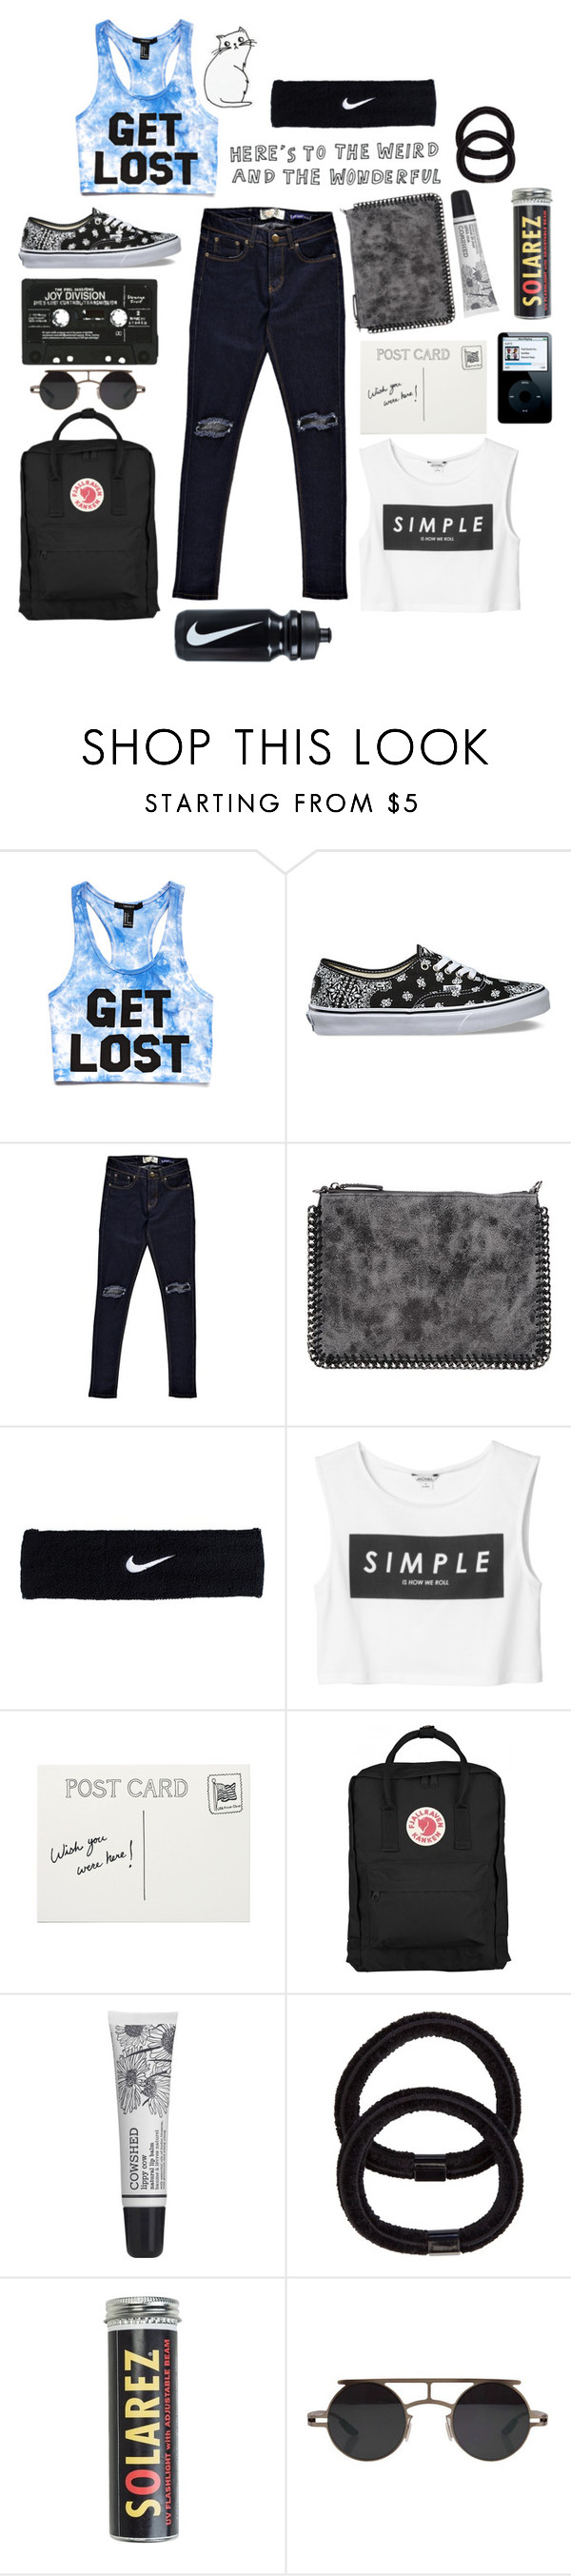 """""""Venture."""" by dooboo ❤ liked on Polyvore featuring Forever 21, Vans, Boohoo, Metropark, NIKE, Monki, Cowshed, John Lewis, Solarez and Retrò"""